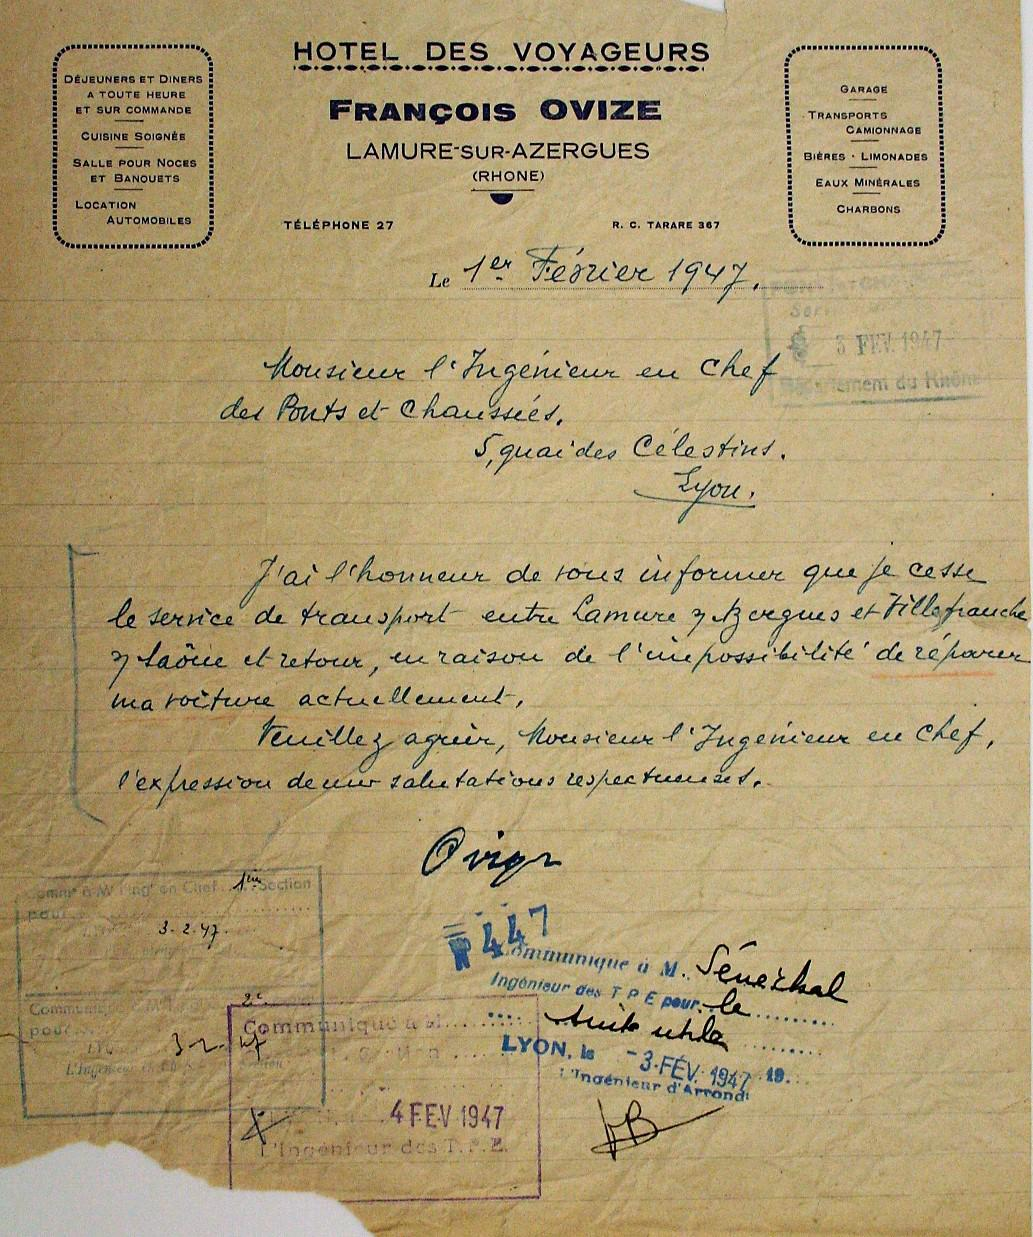 François OVIZE's letter of explanation